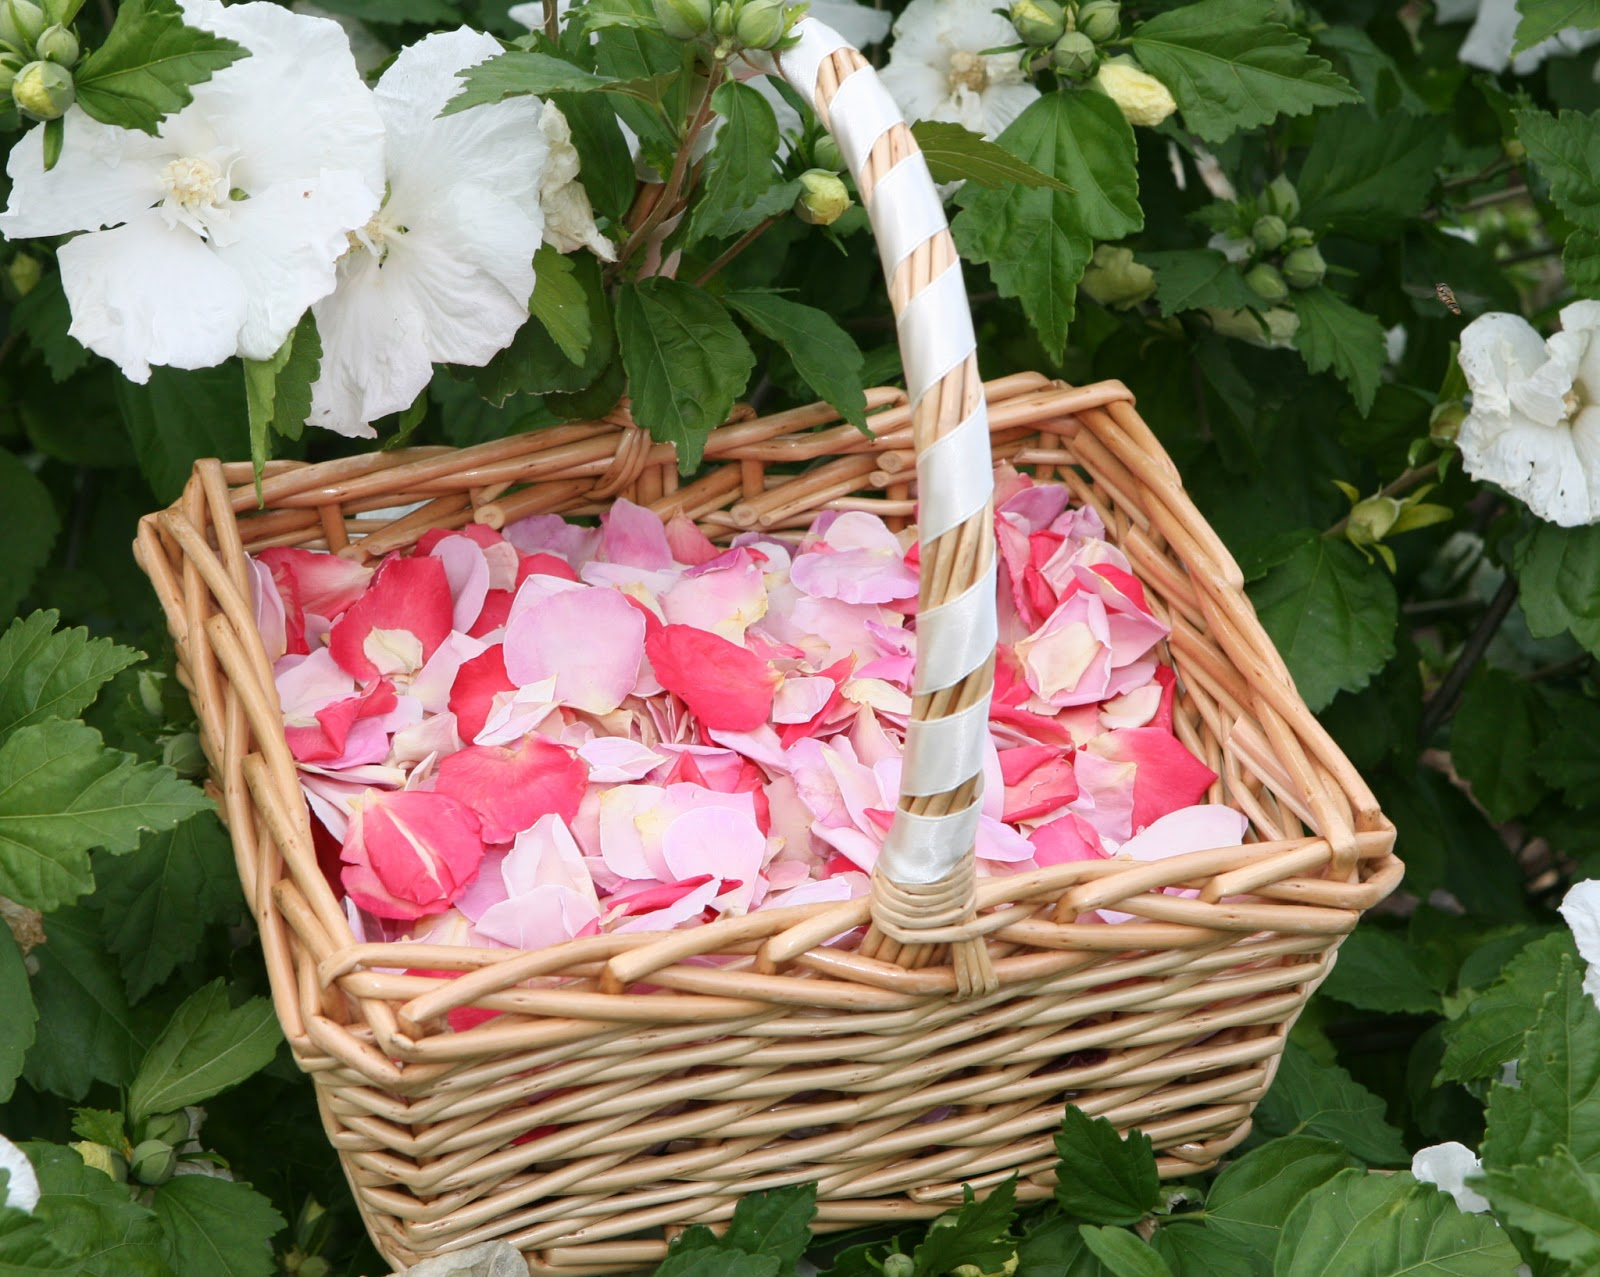 Wedding Baskets For Flower Petals : The confetti rose petal wedding from